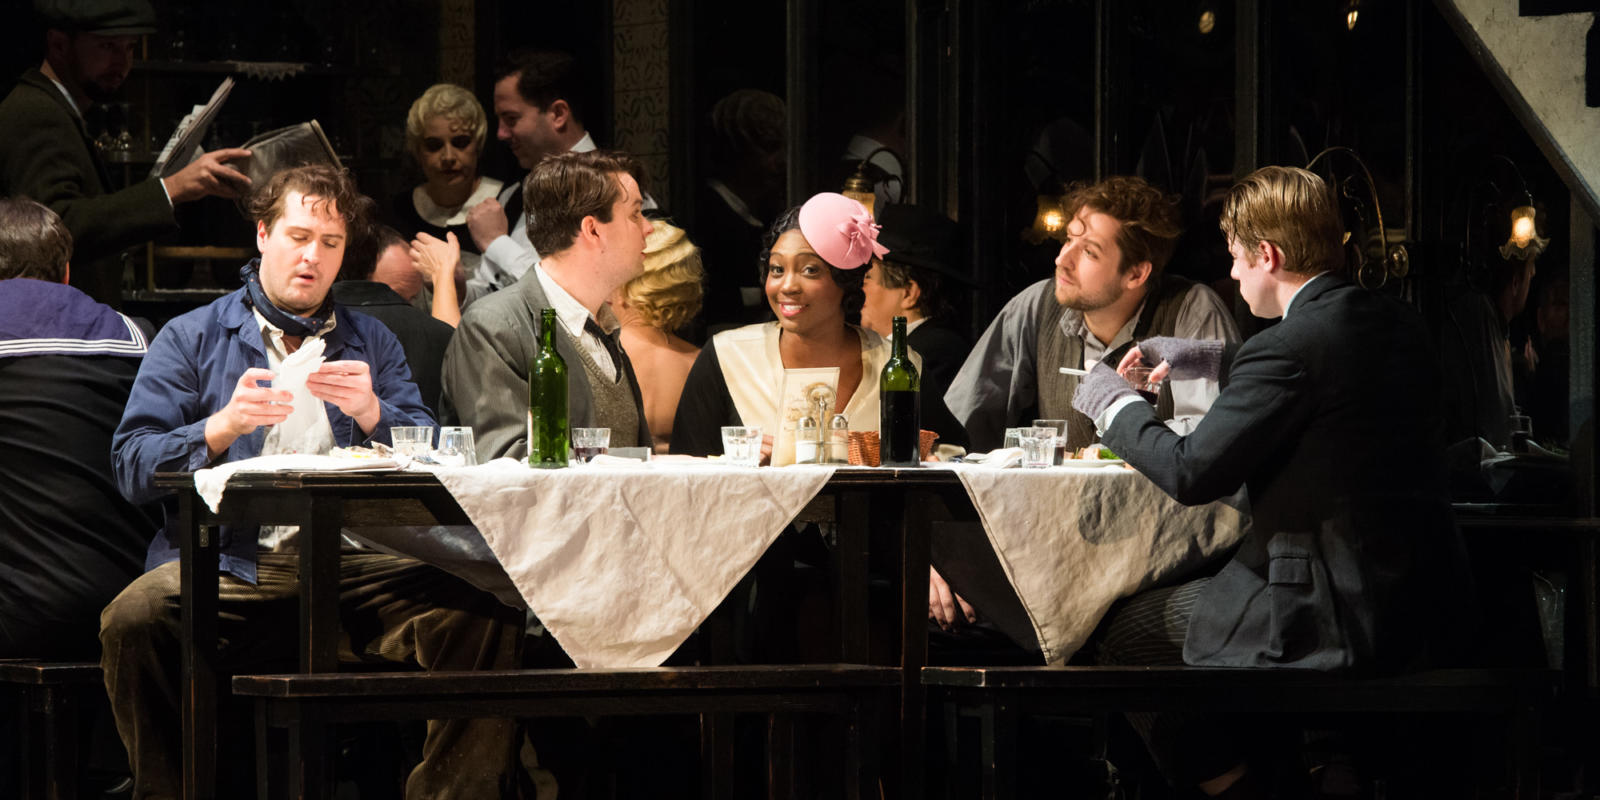 ENO La boheme George von Bergen David Butt Philip Angel Blue George Humphreys Barnaby Rea (c) Thomas Bowles